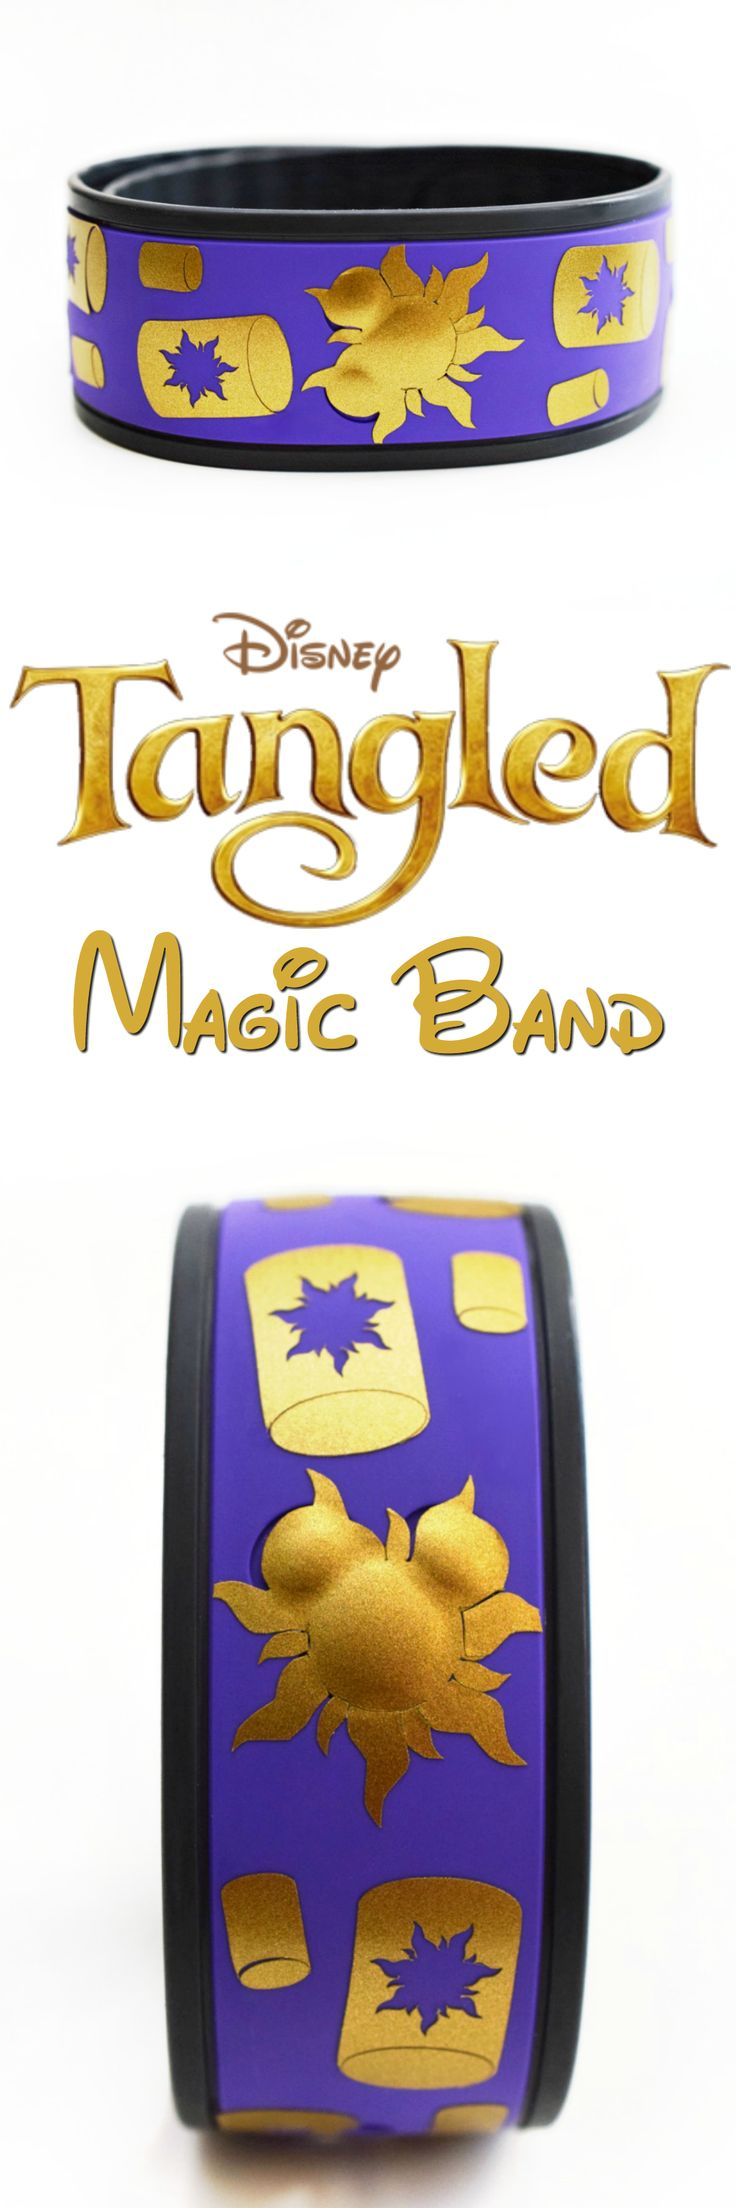 Grab your Silhouette and some gold vinyl to create a fun Tangled Magic Band!